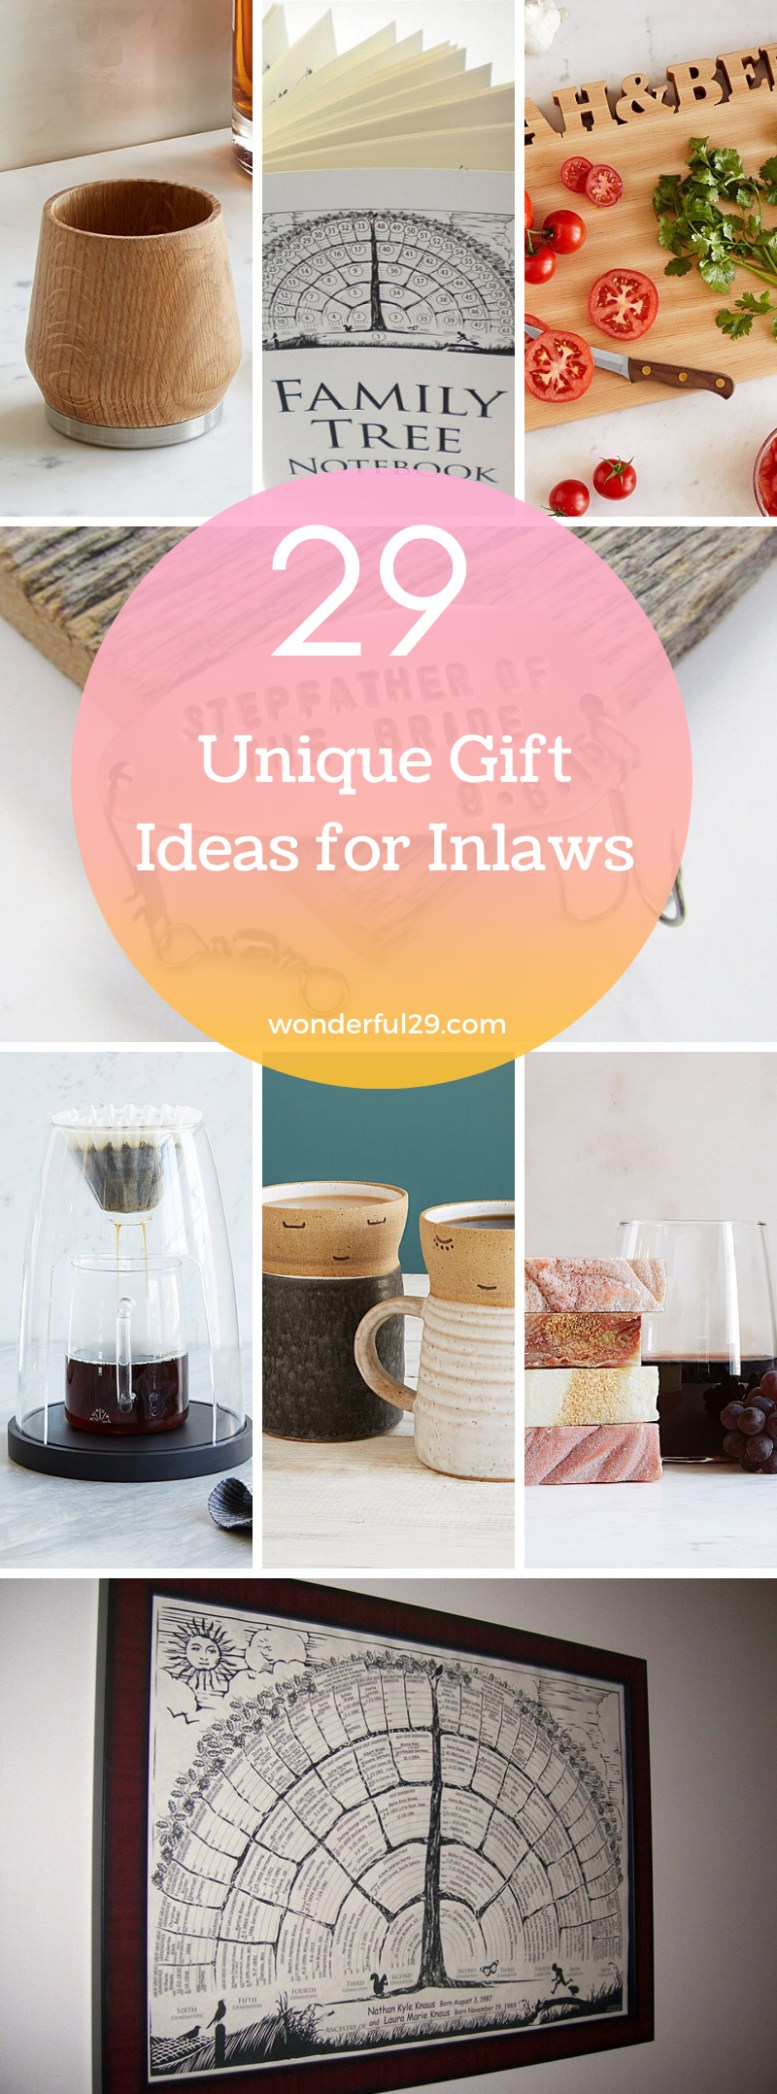 Gift Ideas for Inlaws